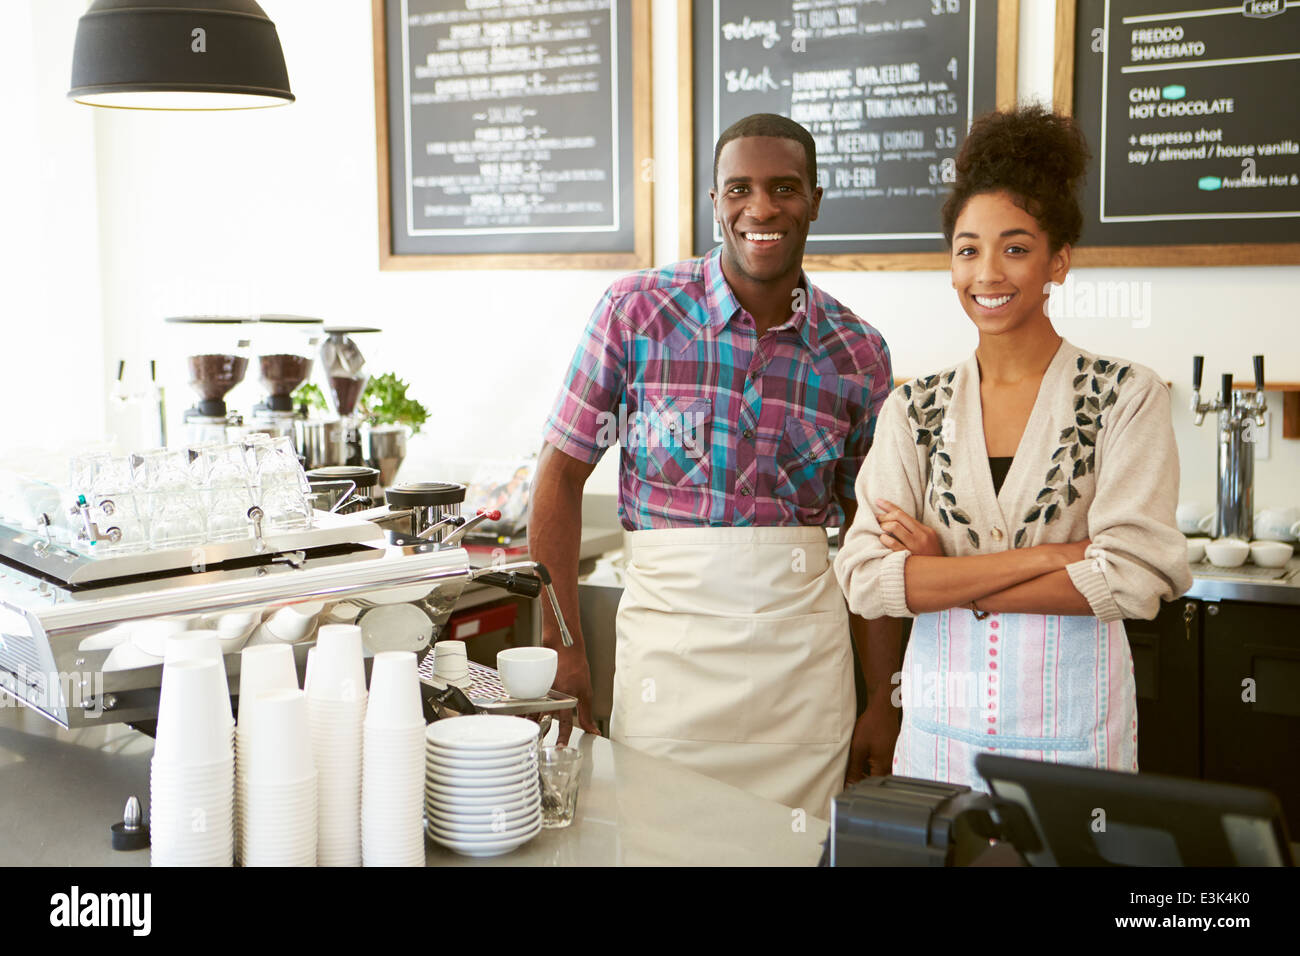 Le personnel masculin et féminin dans la région de Coffee Shop Photo Stock